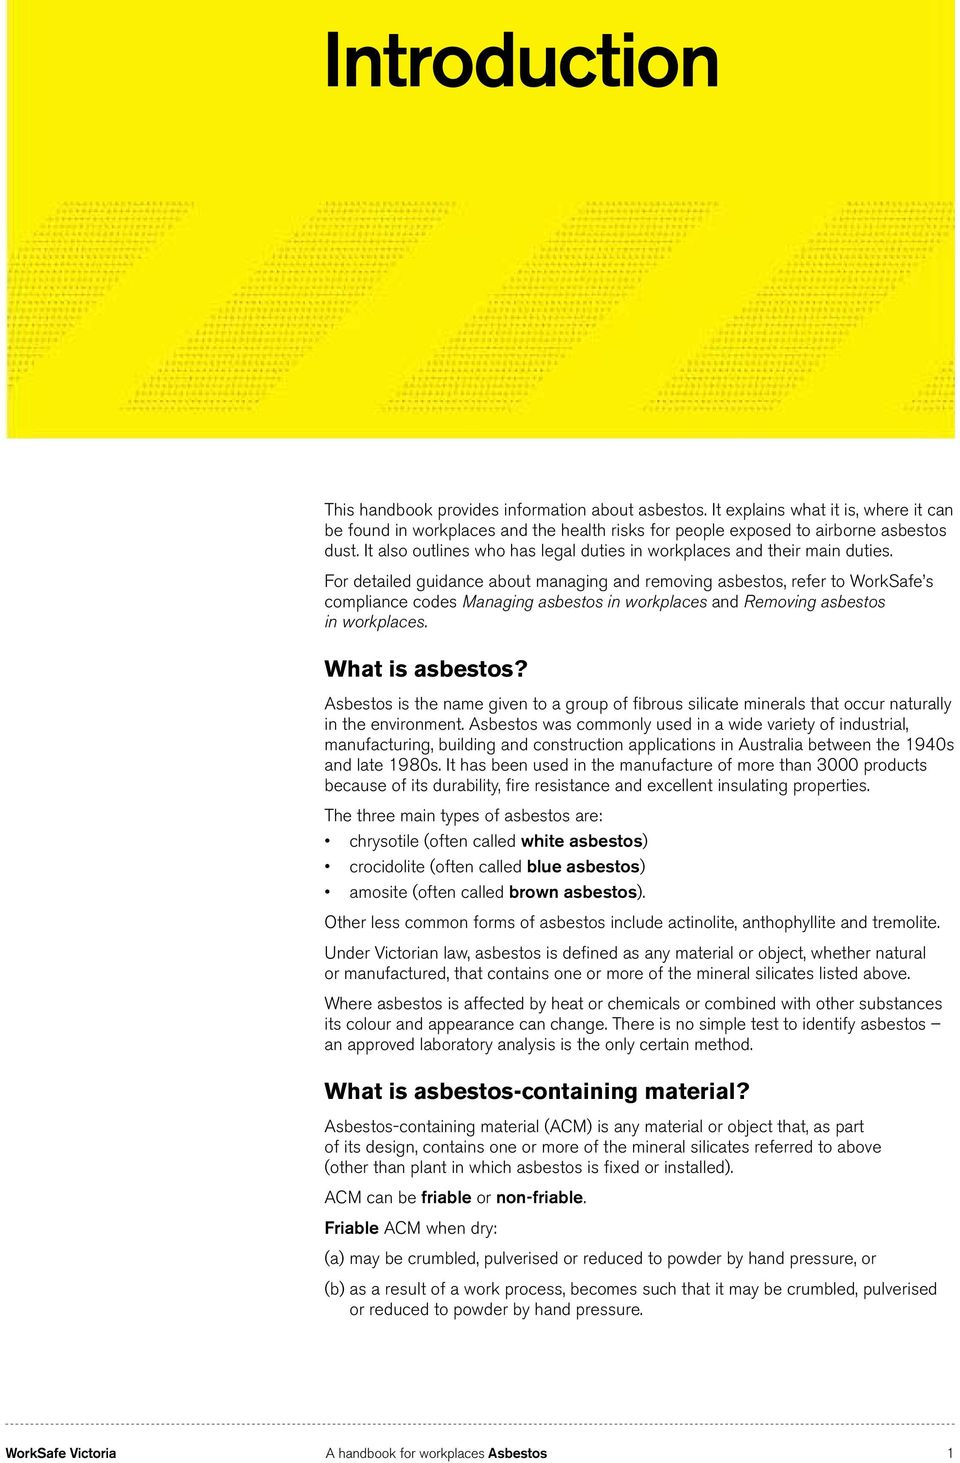 For detailed guidance about managing and removing asbestos, refer to WorkSafe s compliance codes Managing asbestos in workplaces and Removing asbestos in workplaces. What is asbestos?